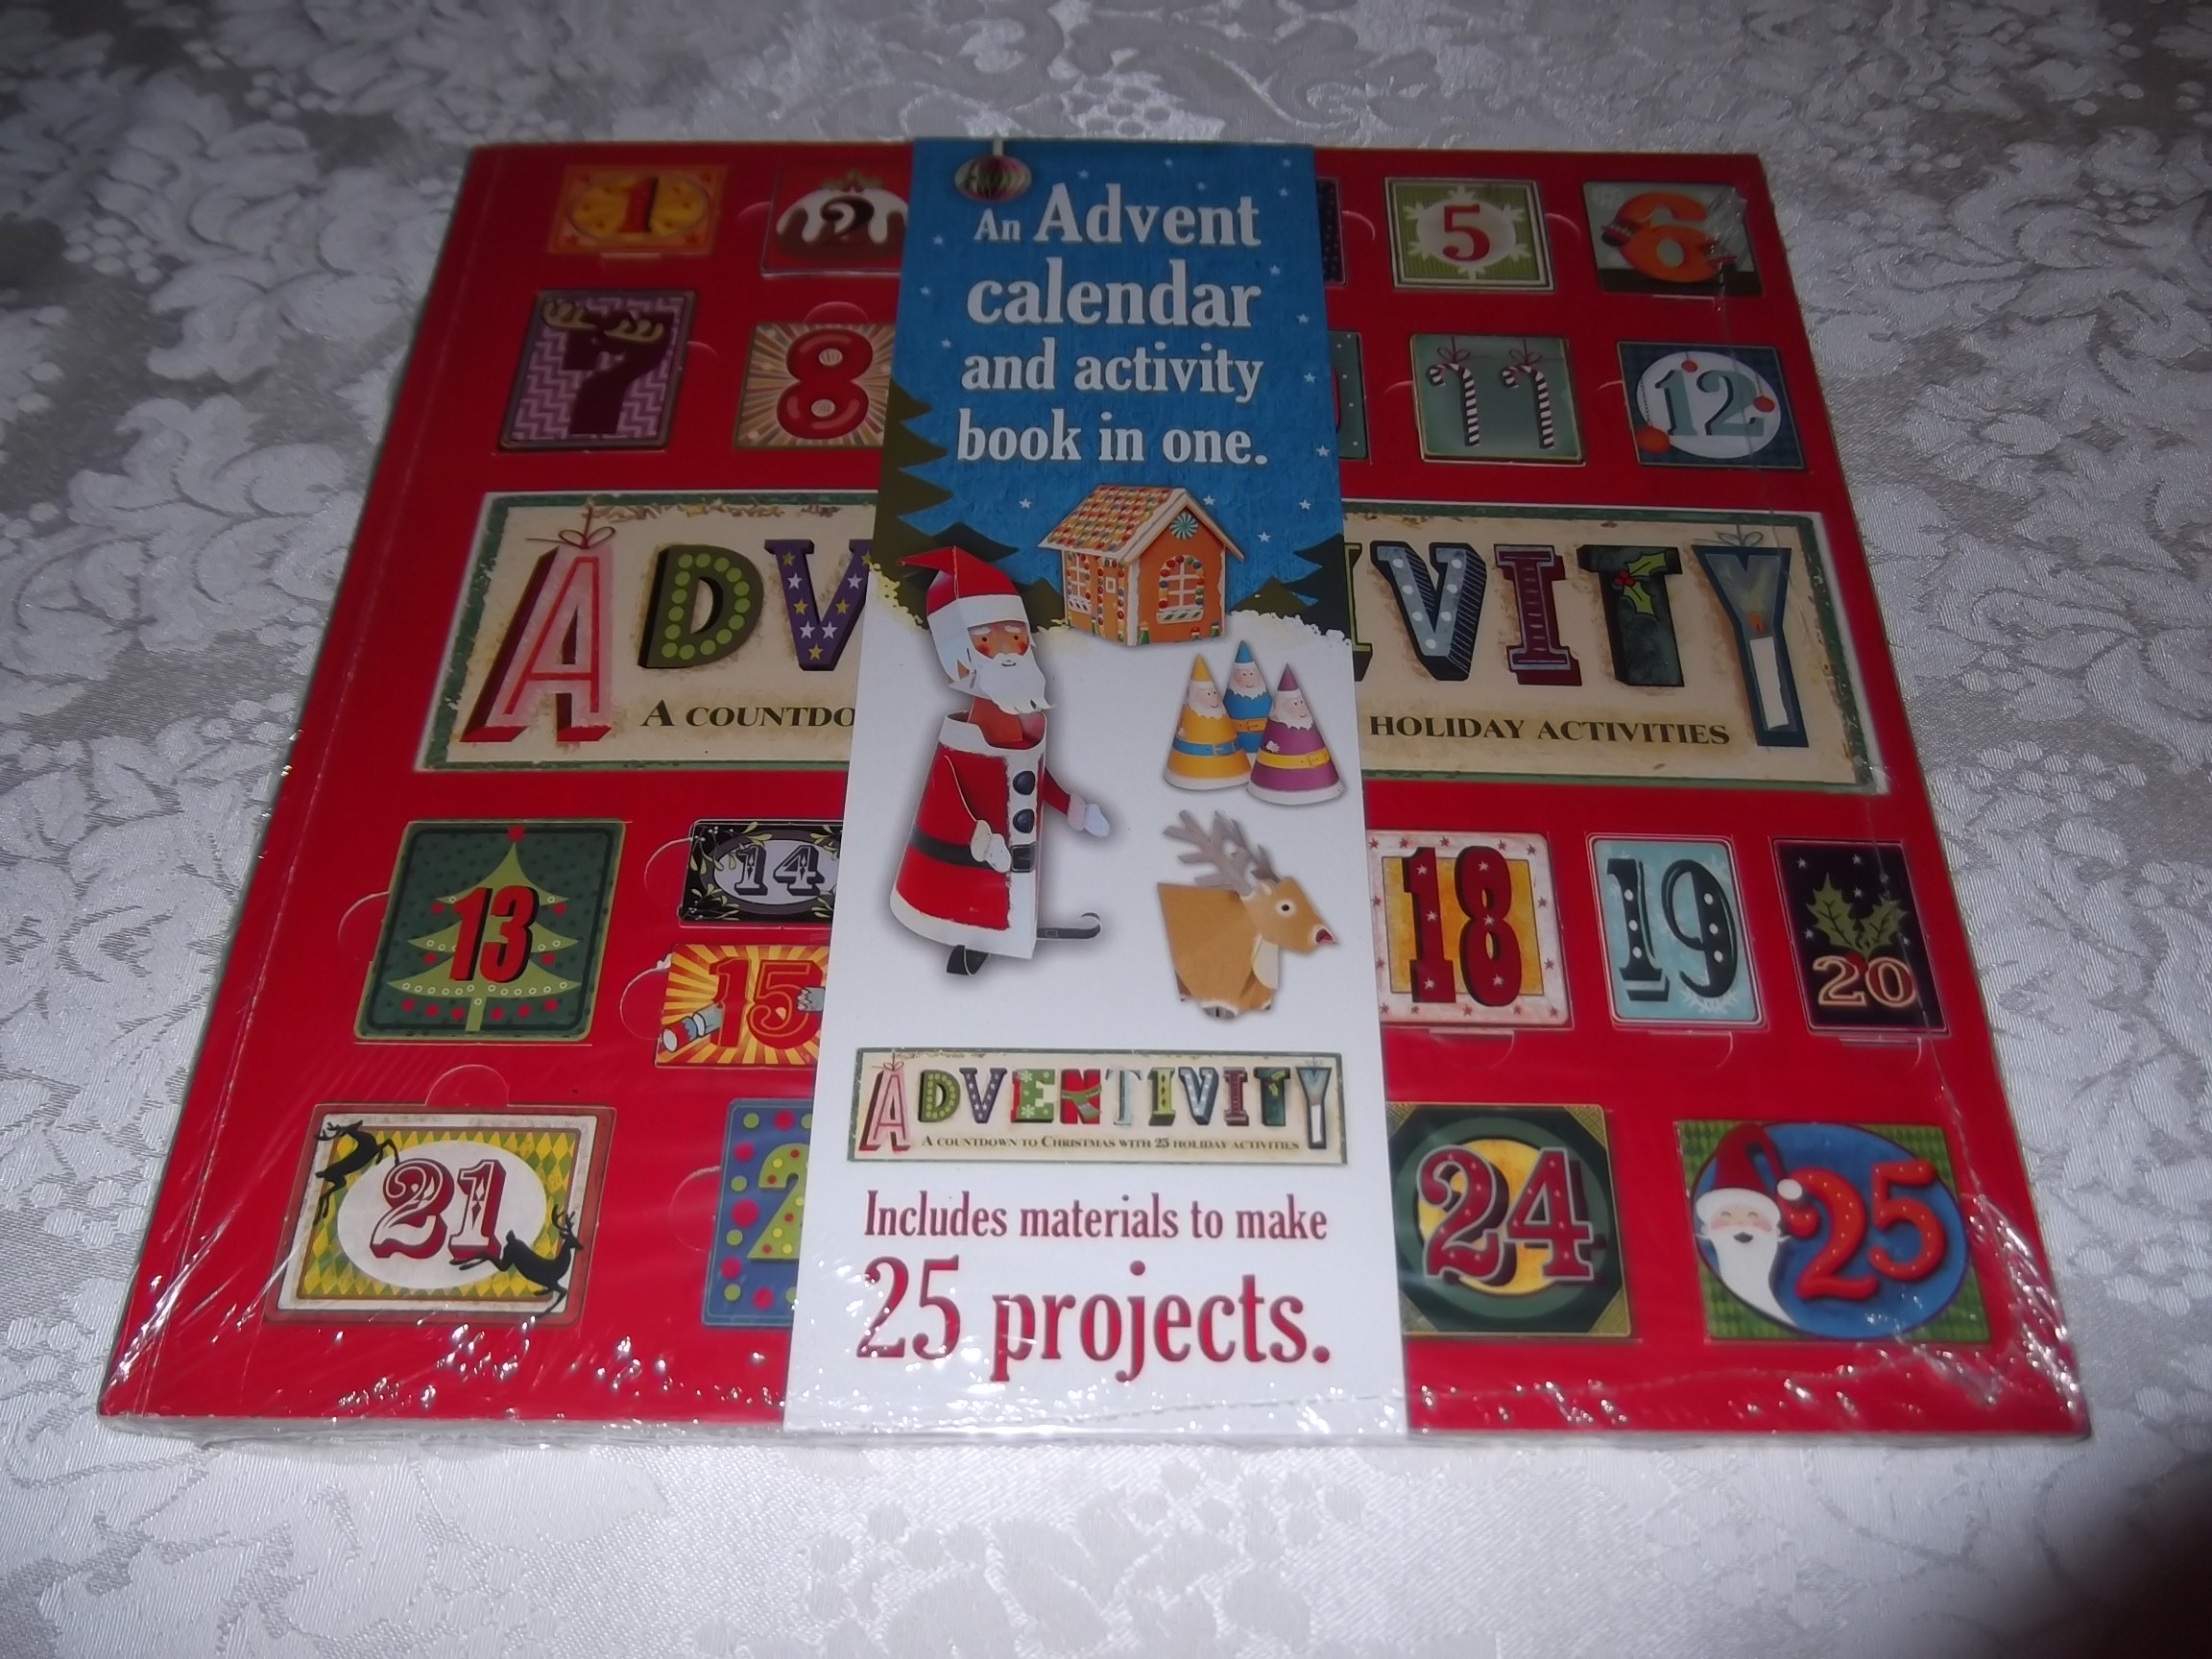 Adventivity A Countdown to Christmas with 25 Holiday Activities Project Book NEW